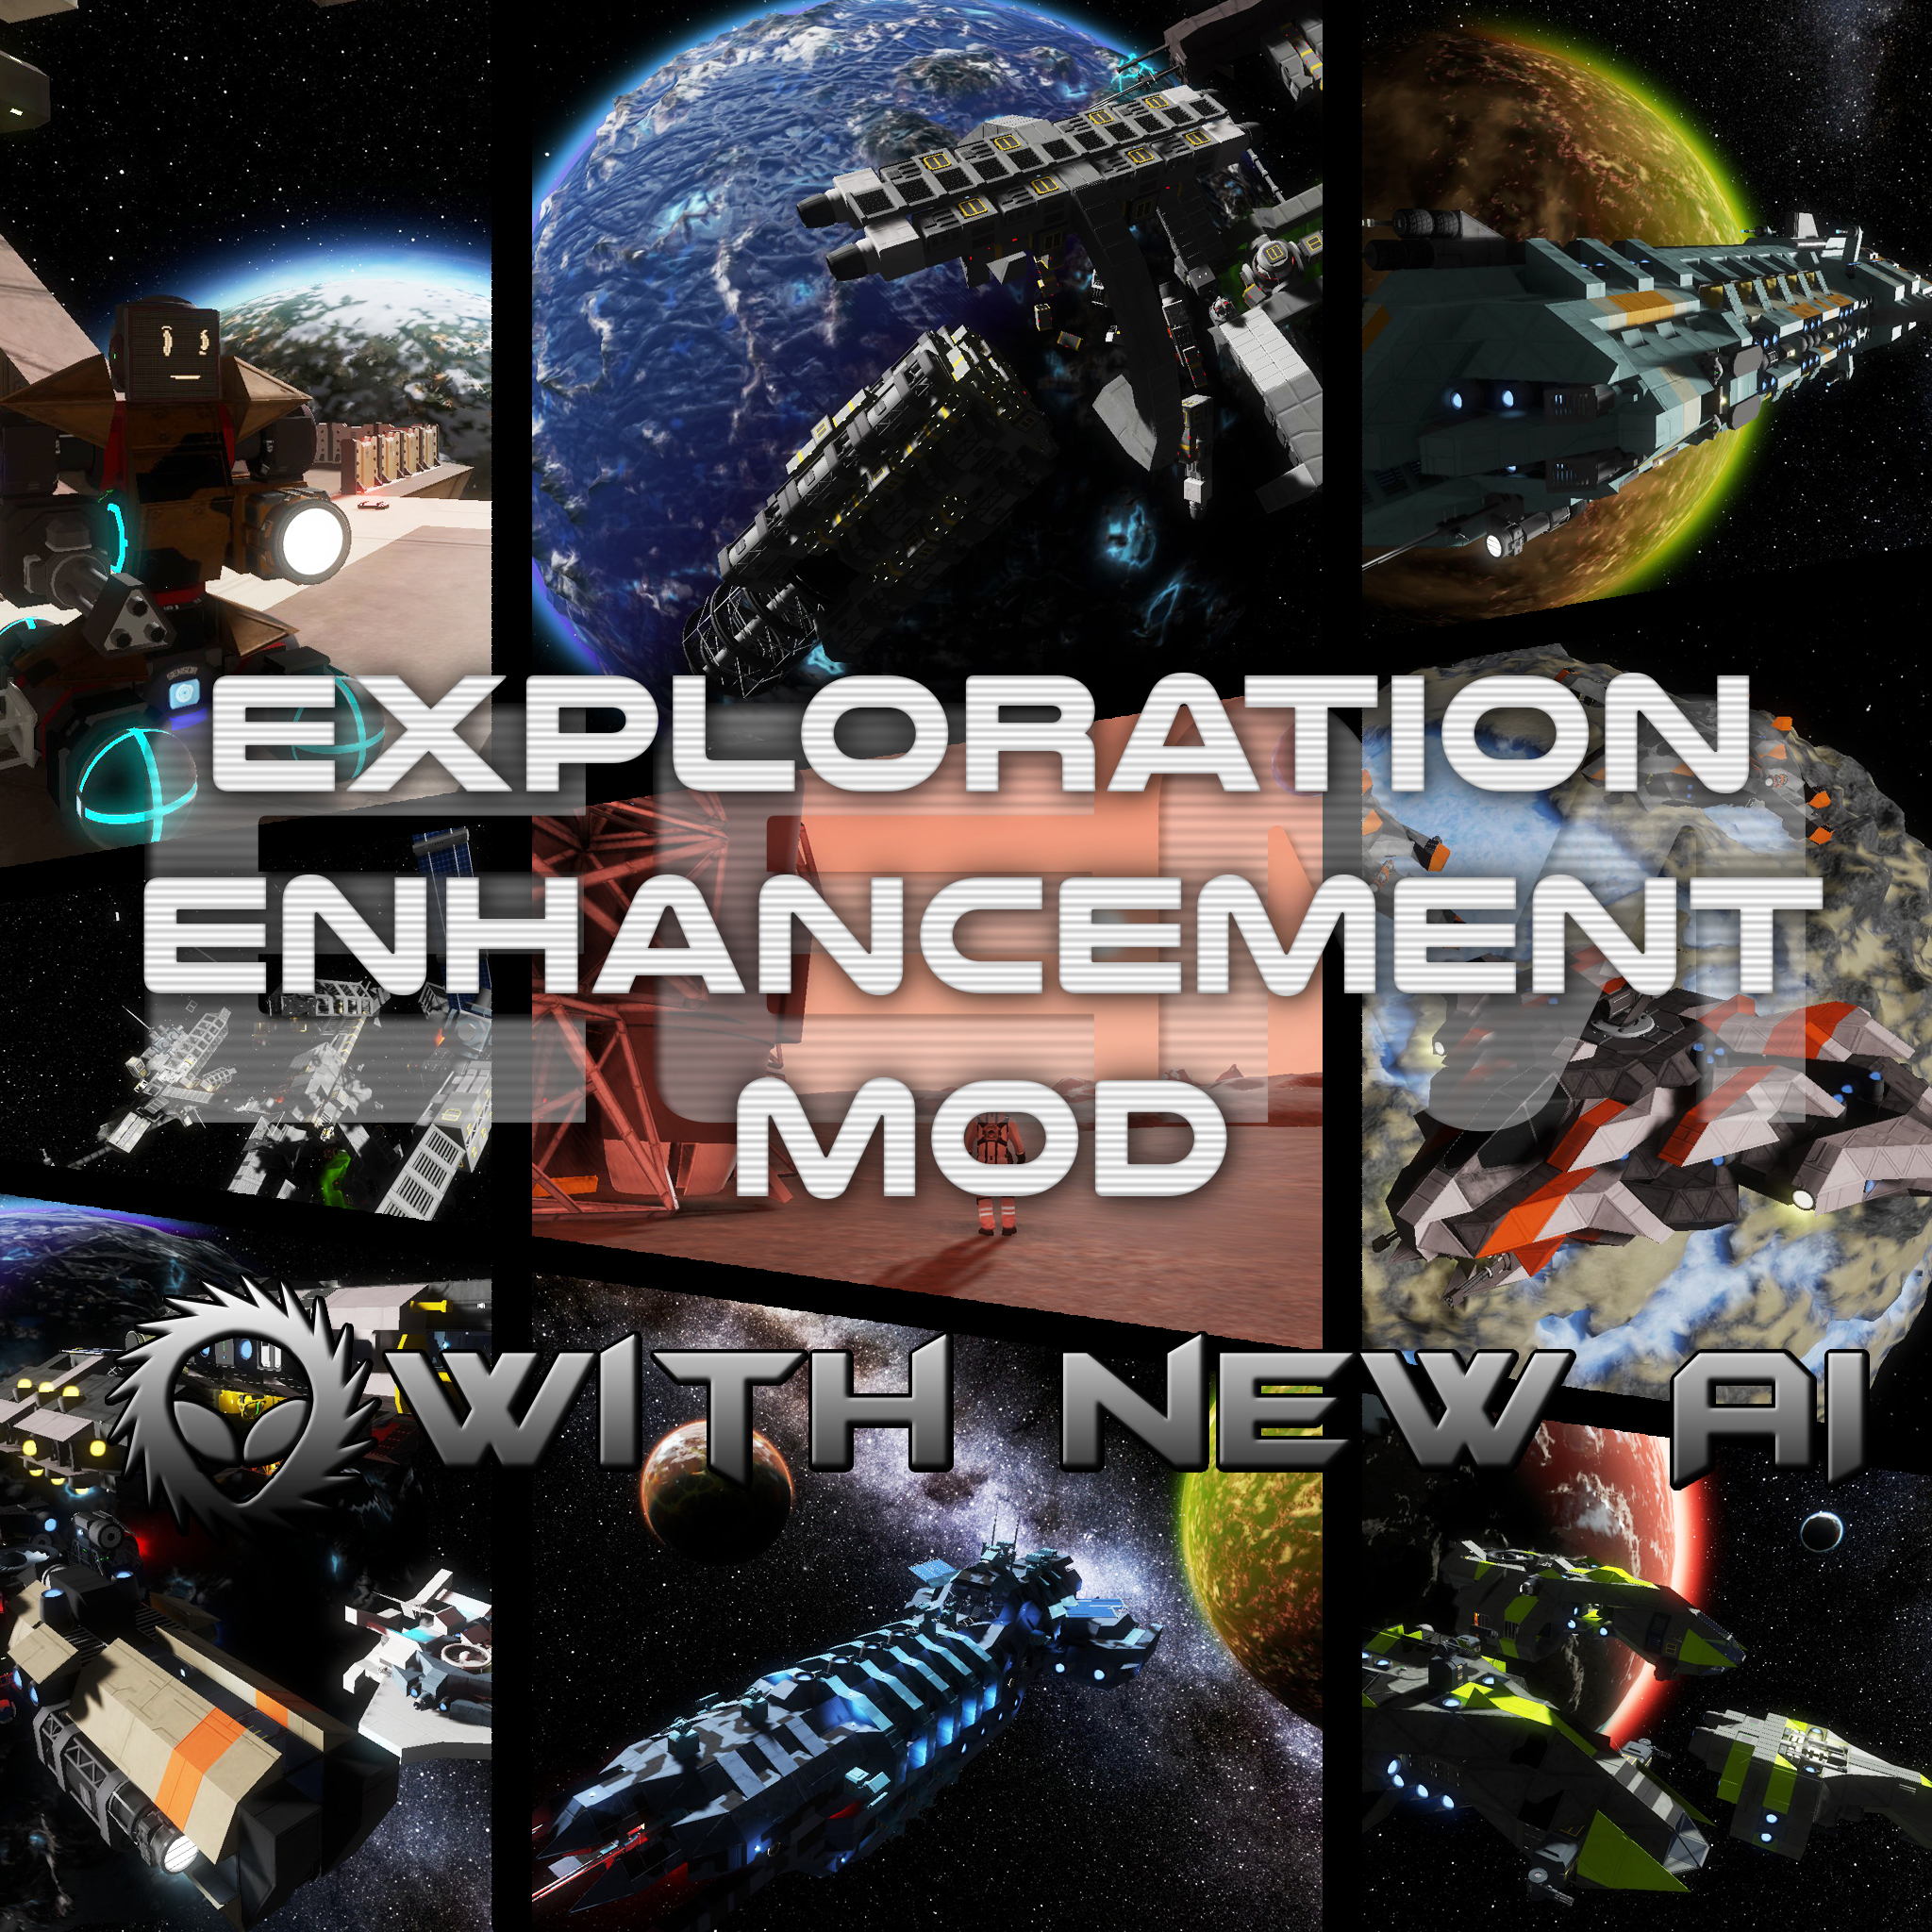 [Outdated] [EEM] Exploration Enhancement Mod v.2.8 - With new AI